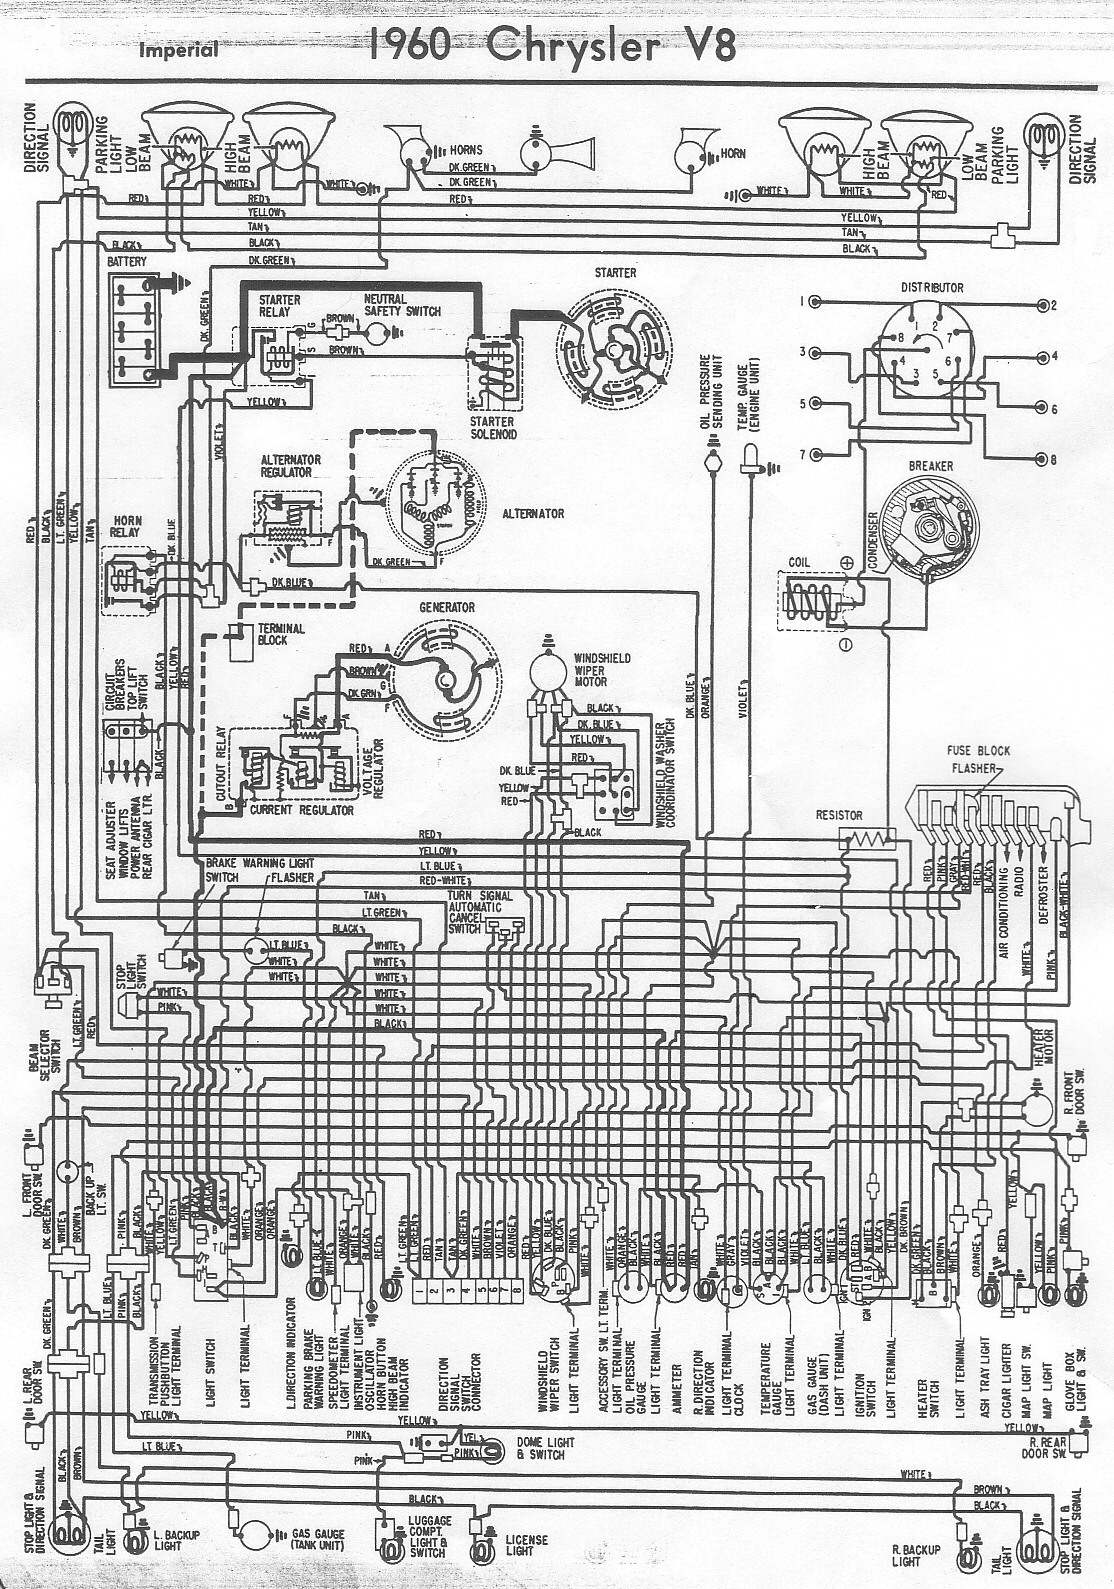 Diagram 1991 Chrysler Imperial Wiring Diagram Full Version Hd Quality Wiring Diagram Diagramgiesw Gisbertovalori It